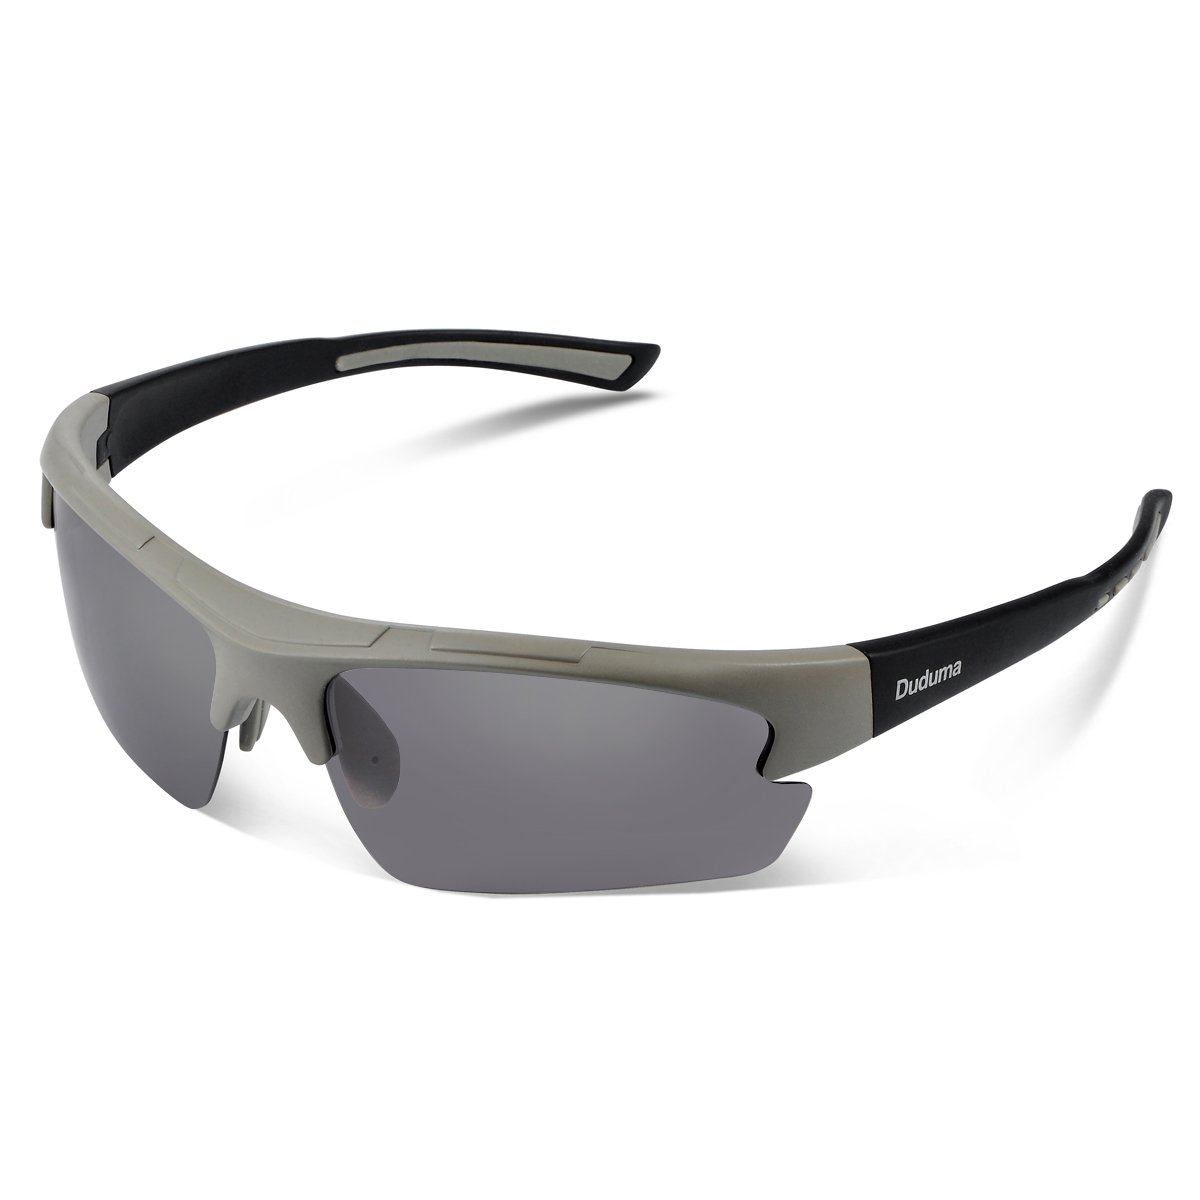 Duduma Polarized Designer Fashion Sports Sunglasses for Baseball Cycling Fishing Golf Tr62 Superlight Frame (Grey Matte Frame with Black Lens) by Duduma